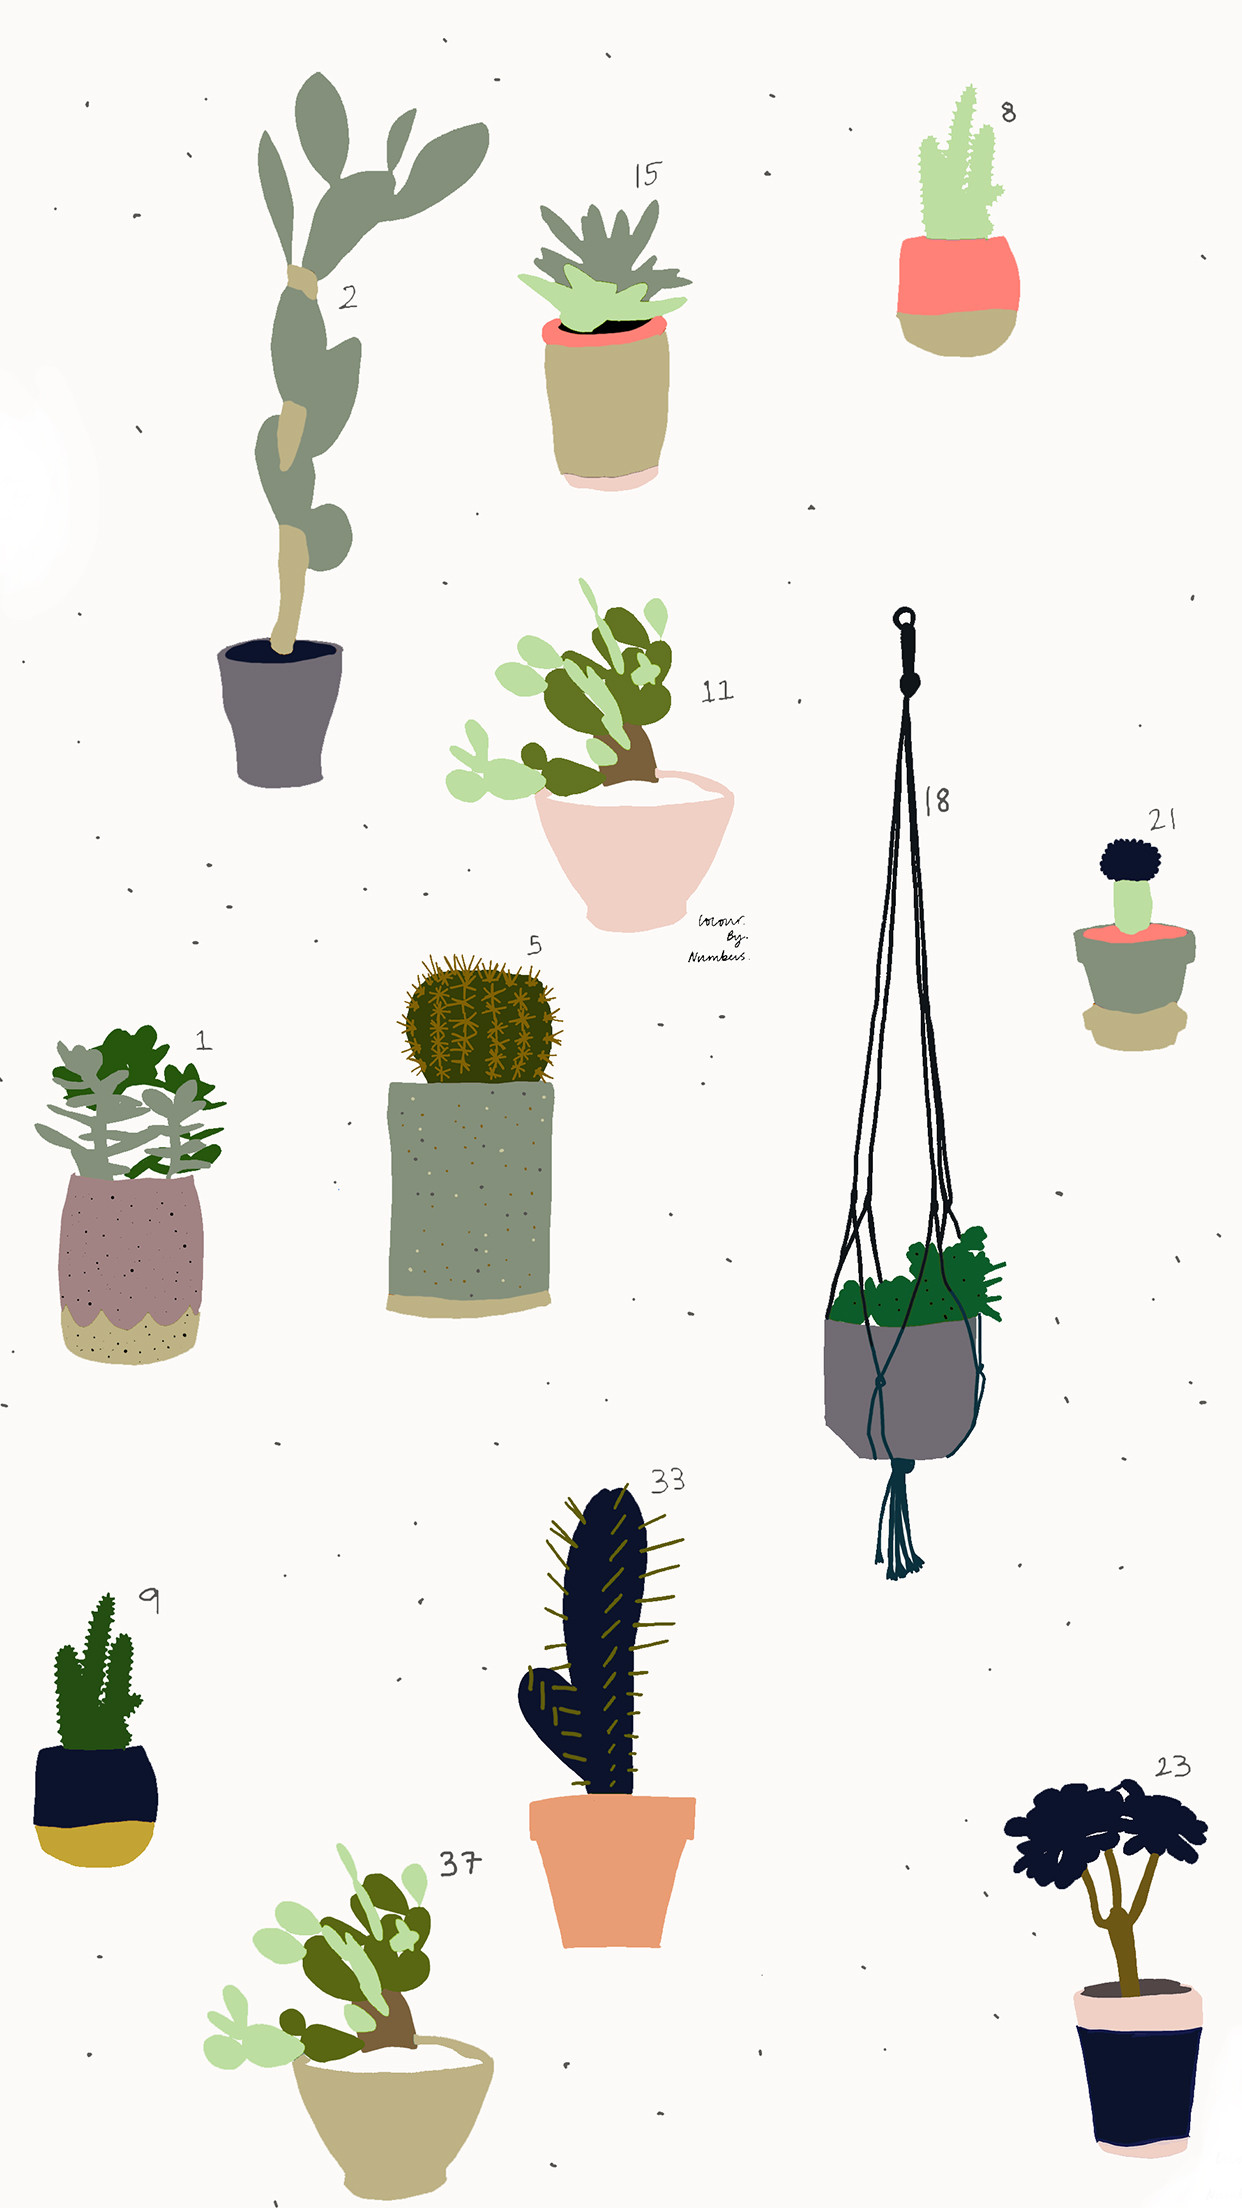 Res: 1242x2208, Download the cactus print here for MOBILE and DESKTOP.